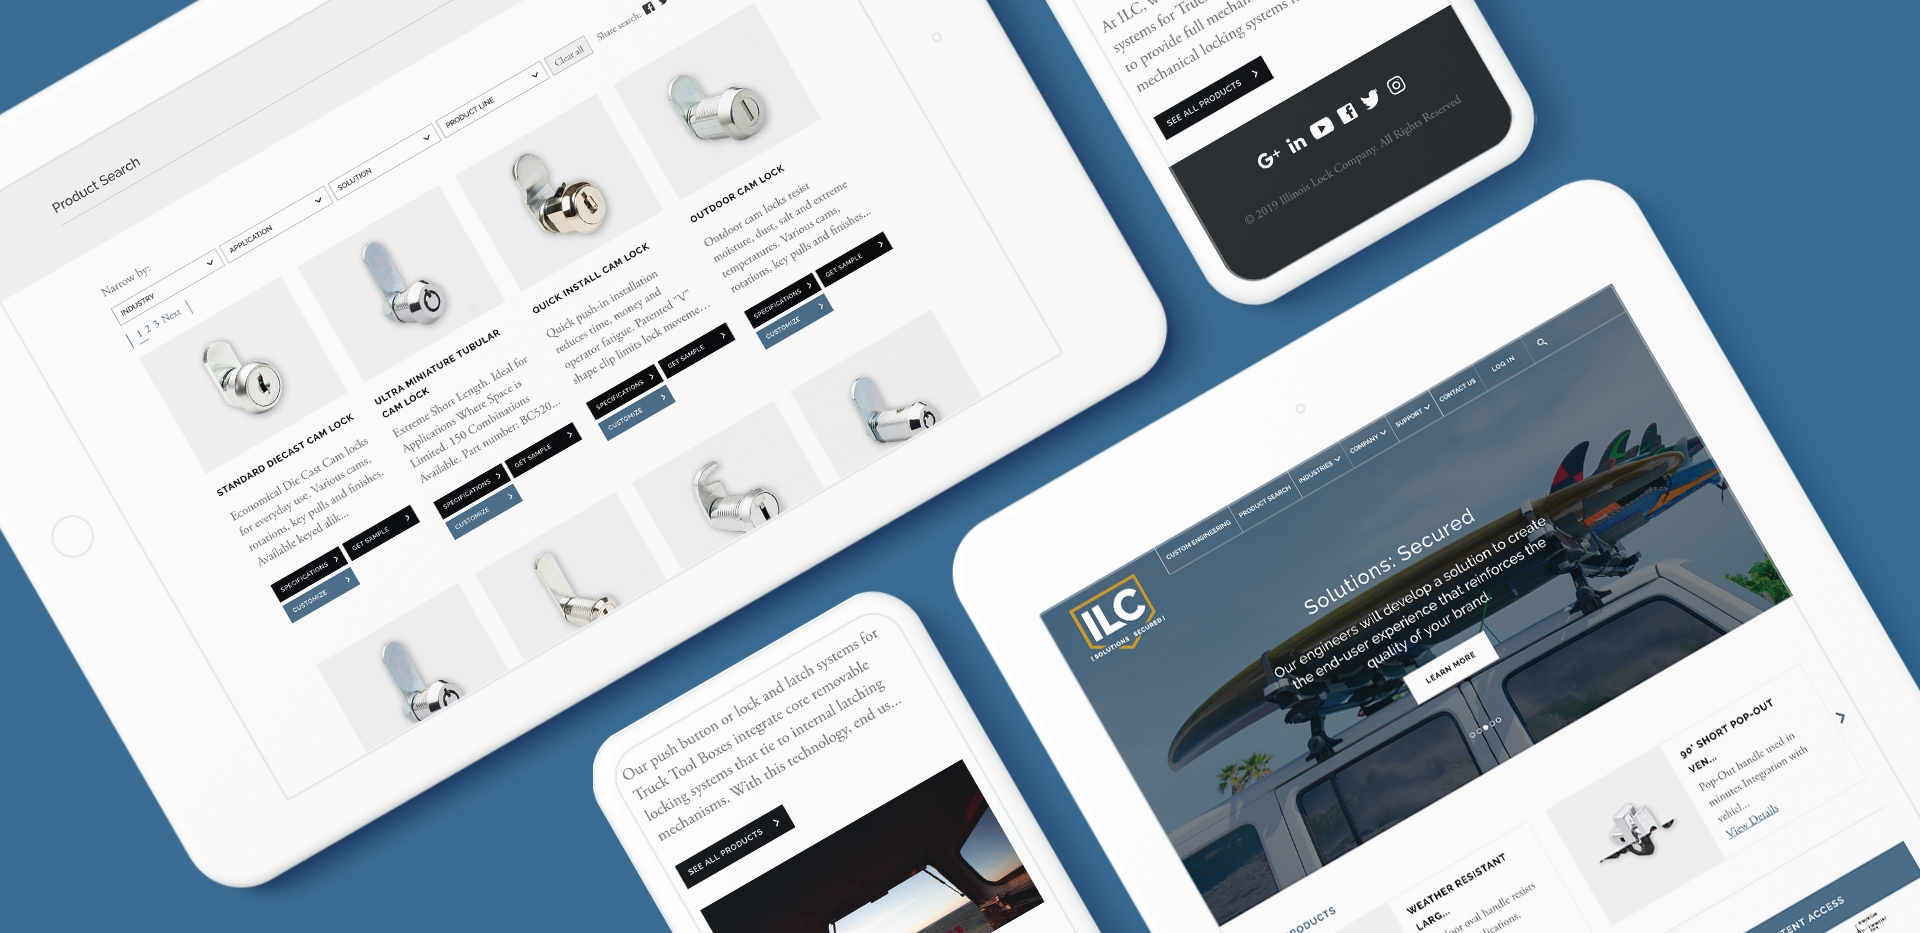 ILC manufacturer website design show on mobile phone and tablet